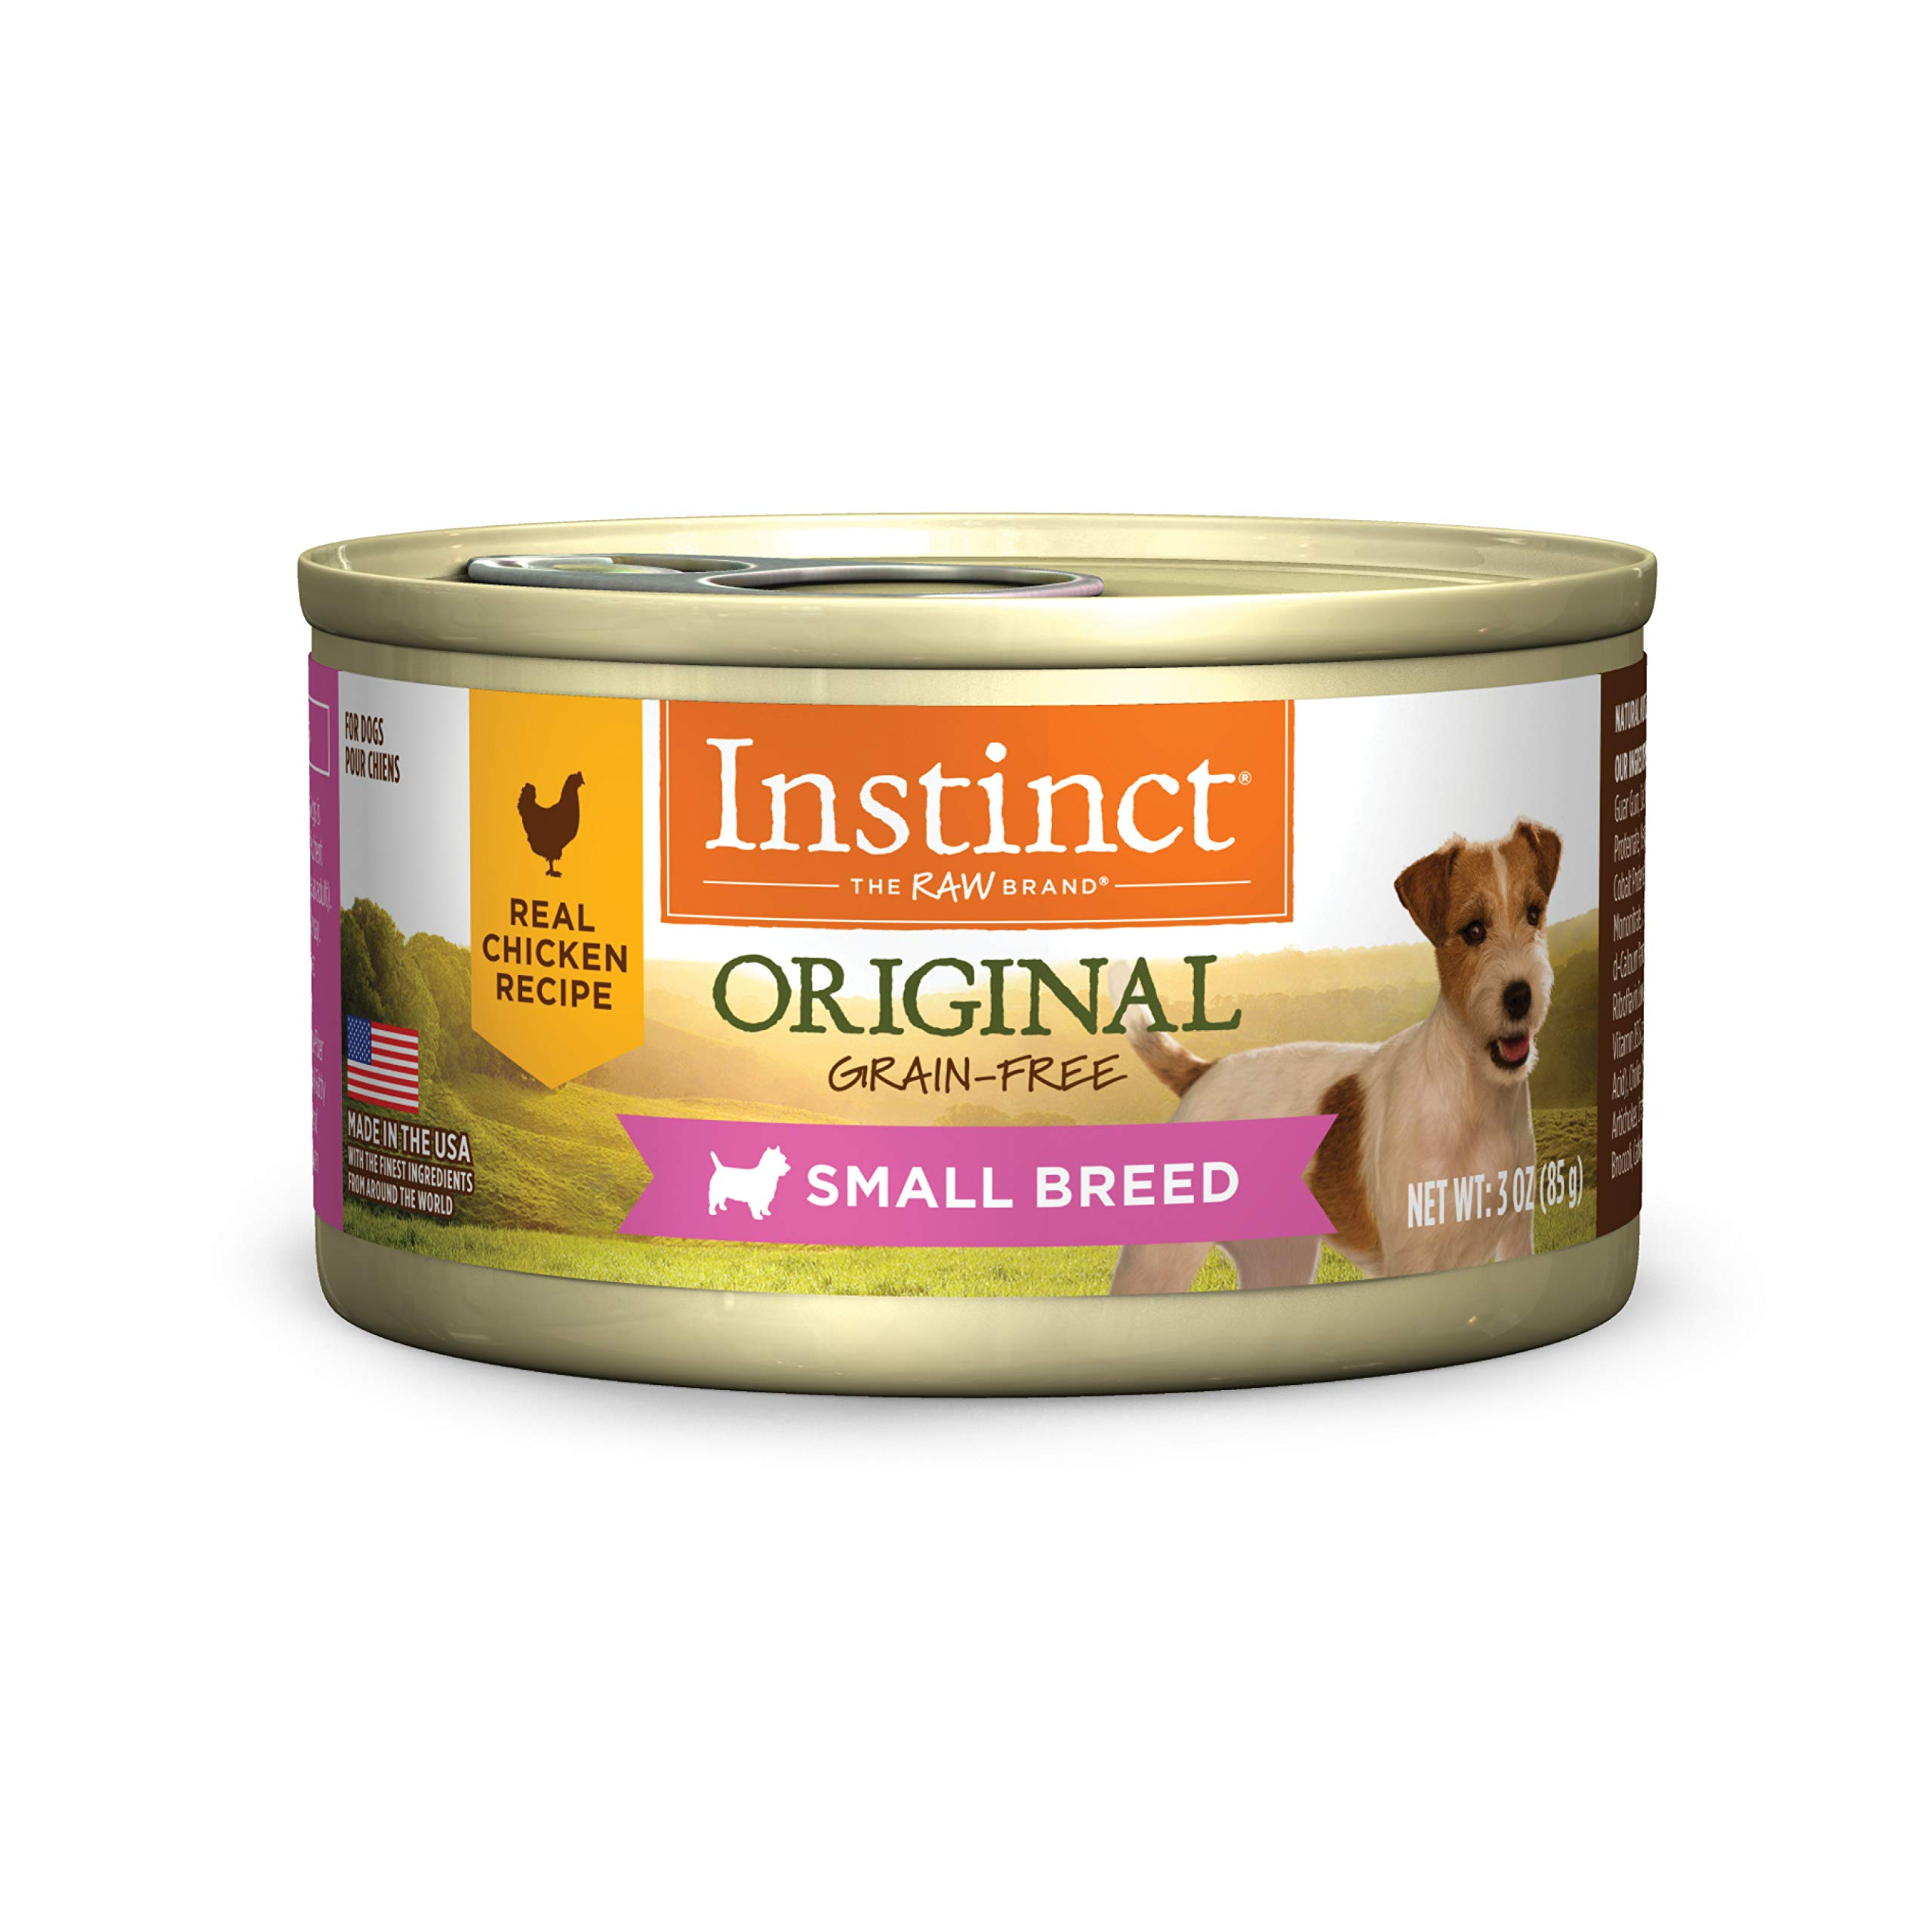 Instinct Original Small Breed Grain Free Real Chicken Recipe Natural Wet Canned Dog Food by Nature's Variety, 3 oz. Cans (Case of 24) by Instinct